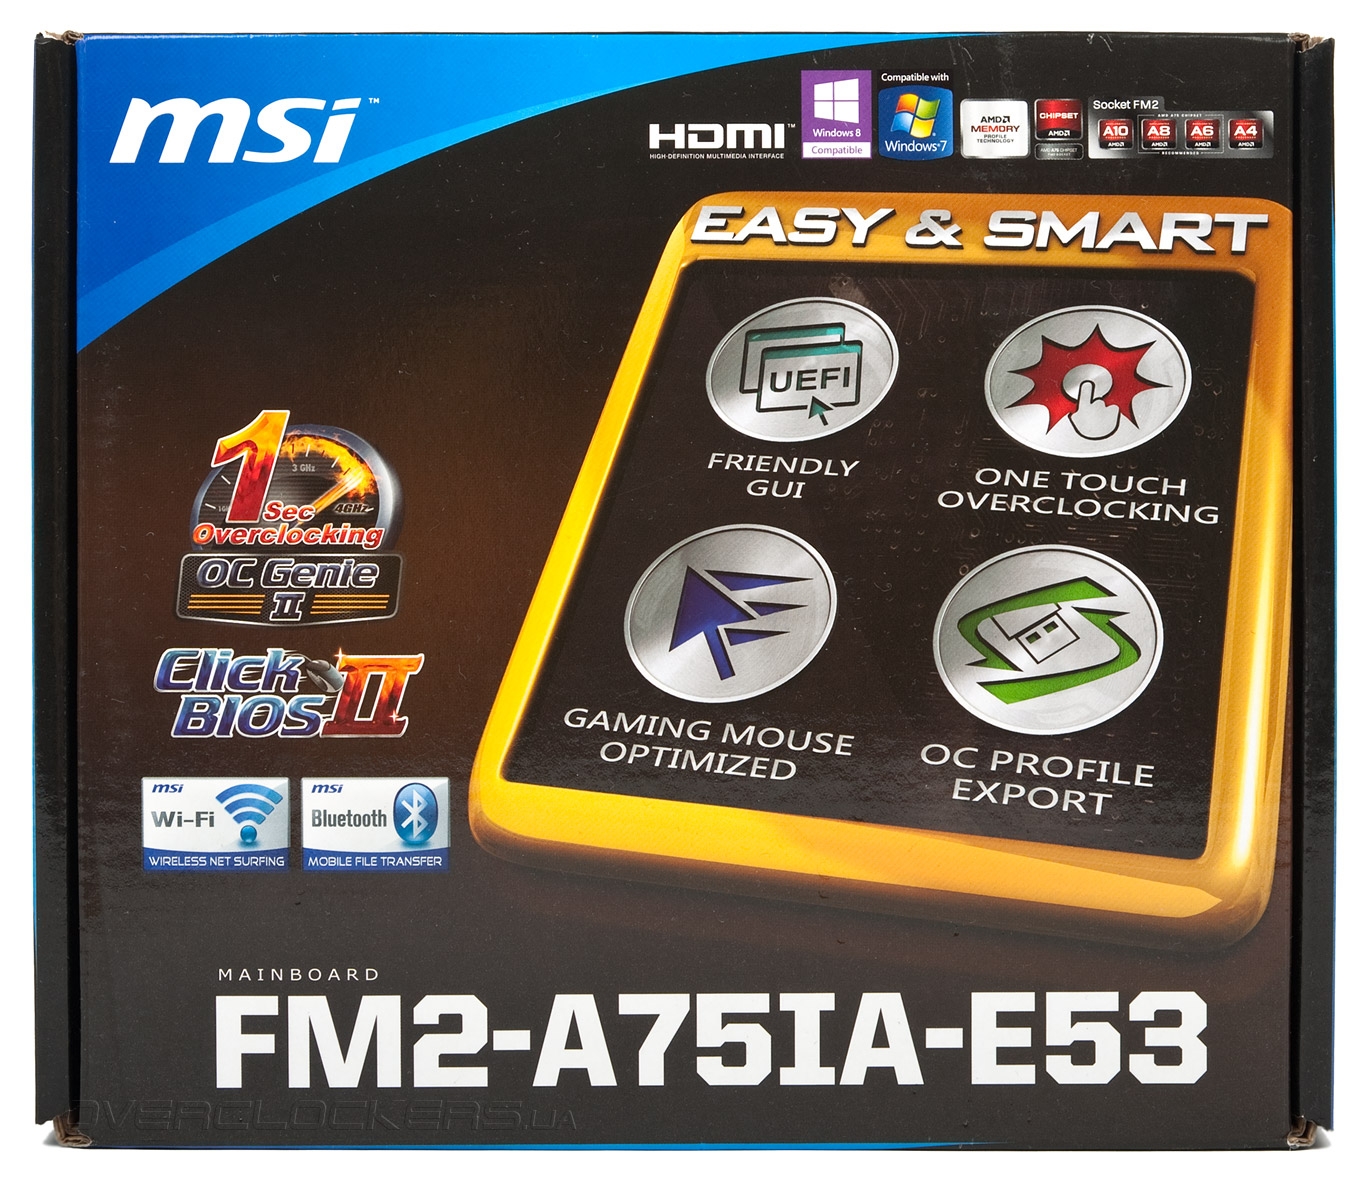 DOWNLOAD DRIVER: MSI FM2-A75IA-E53 ATHEROS BLUETOOTH